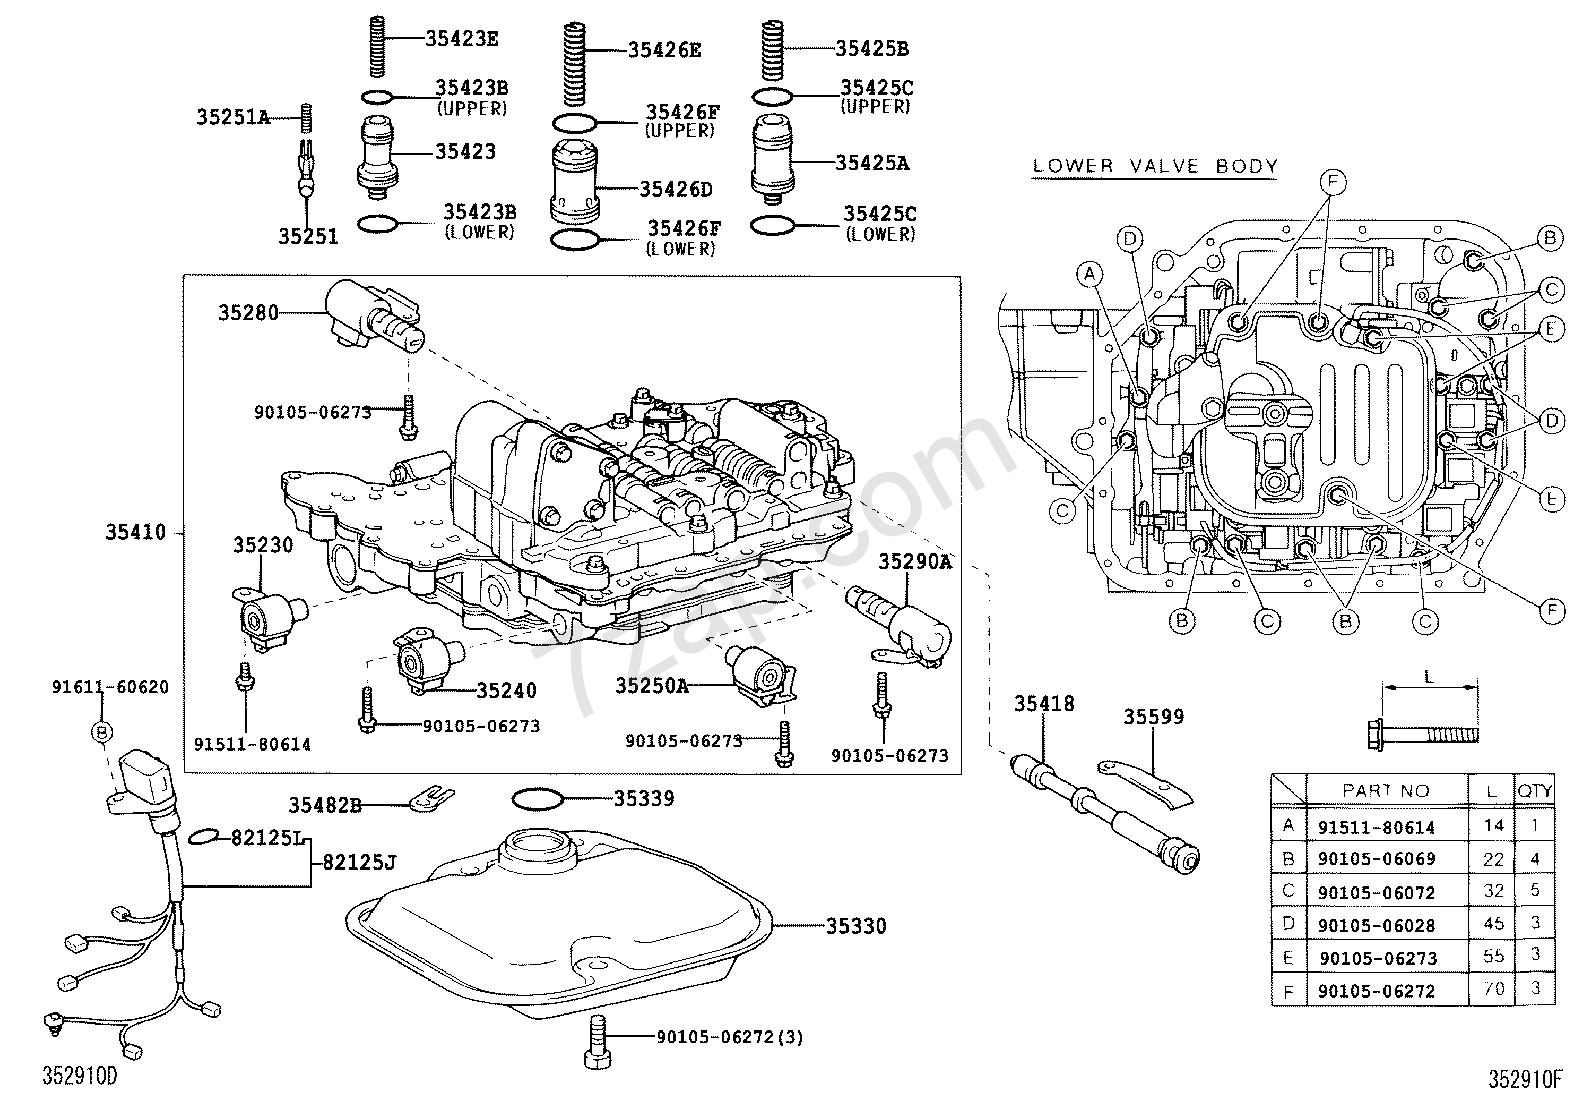 46rh Valve Body Diagram Trusted Wiring Diagrams 30 40le Transmission Corolla For Light